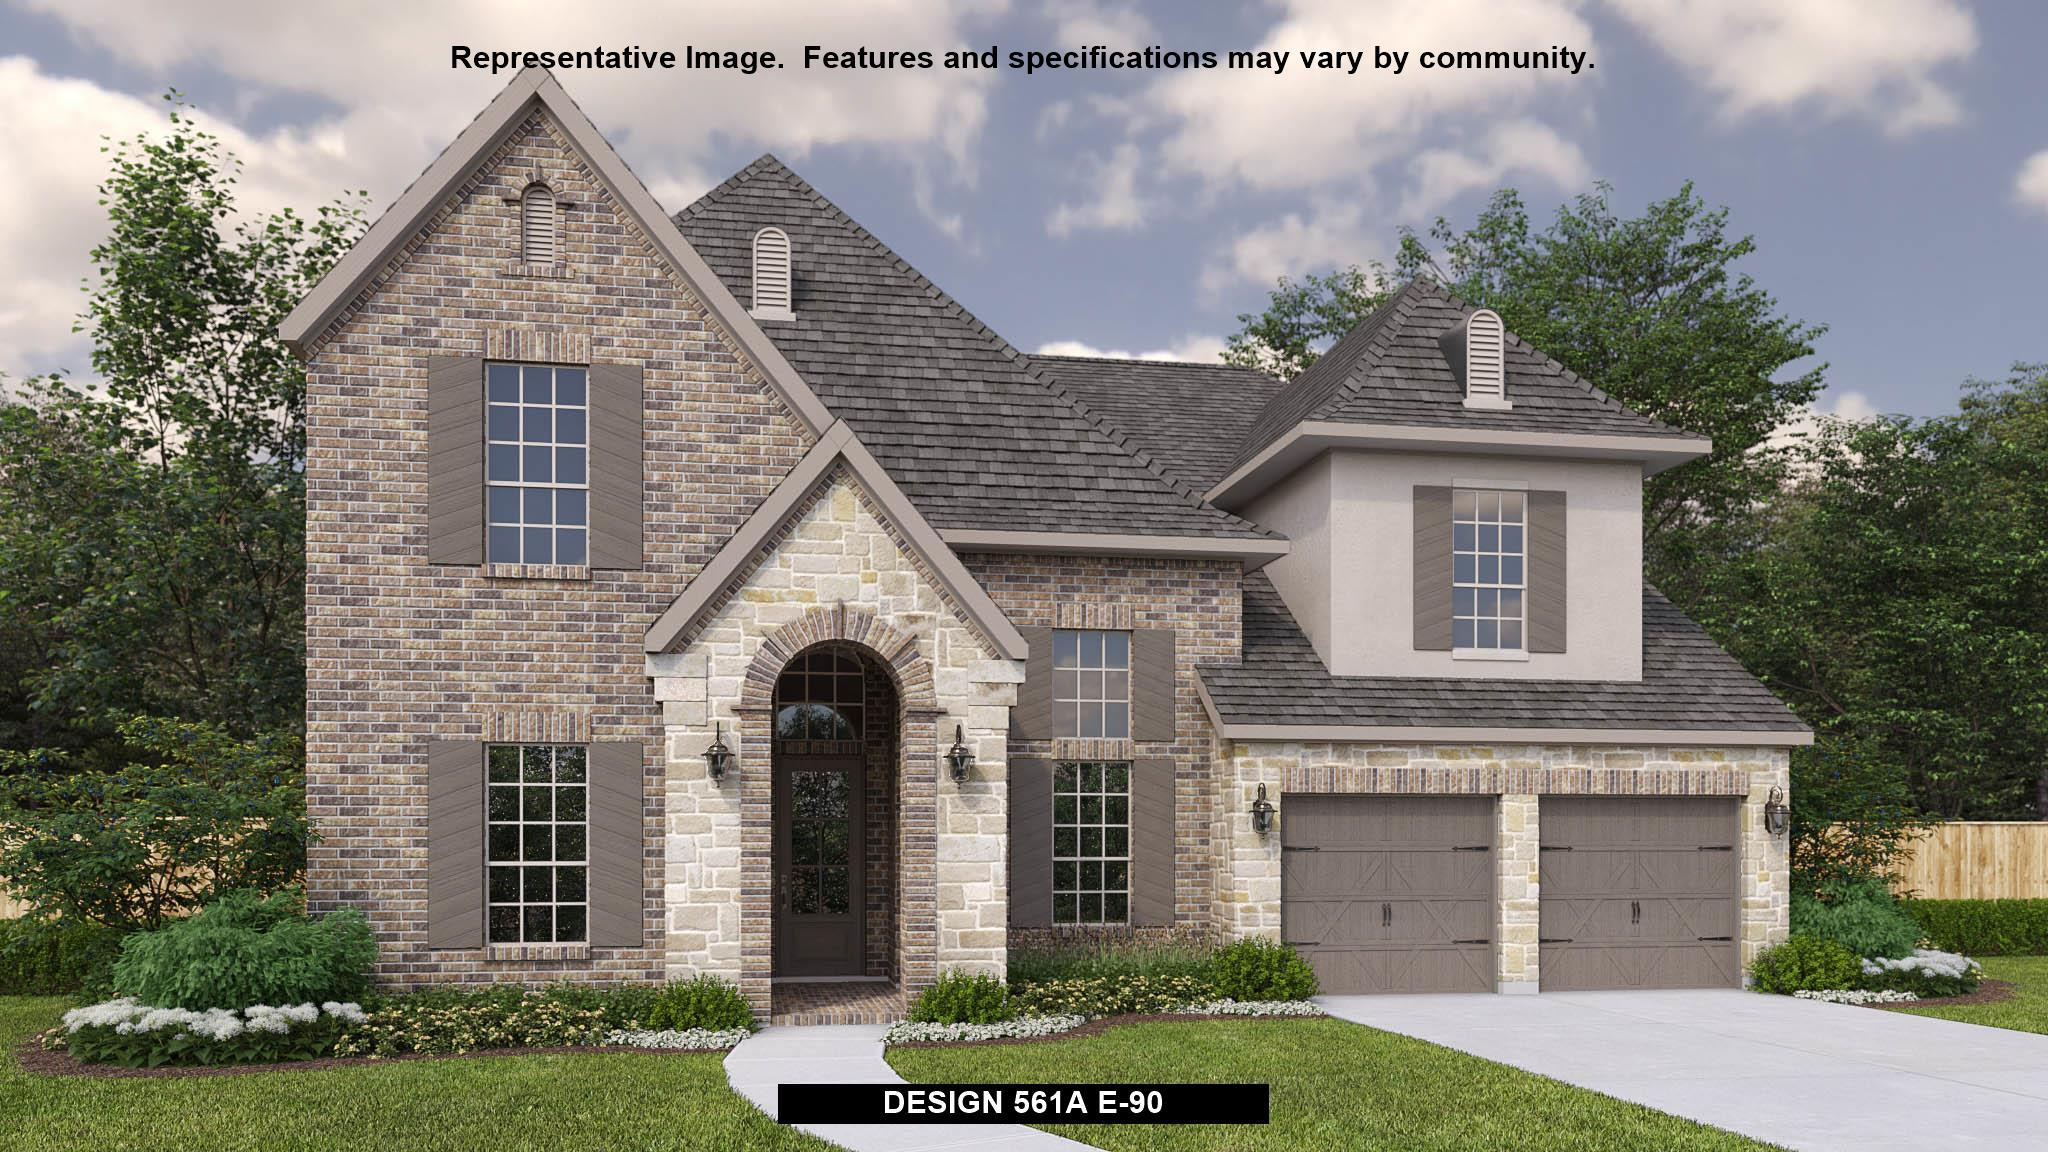 Single Family for Active at Walsh 70' - 561a 13752 Parkline Way Aledo, Texas 76008 United States